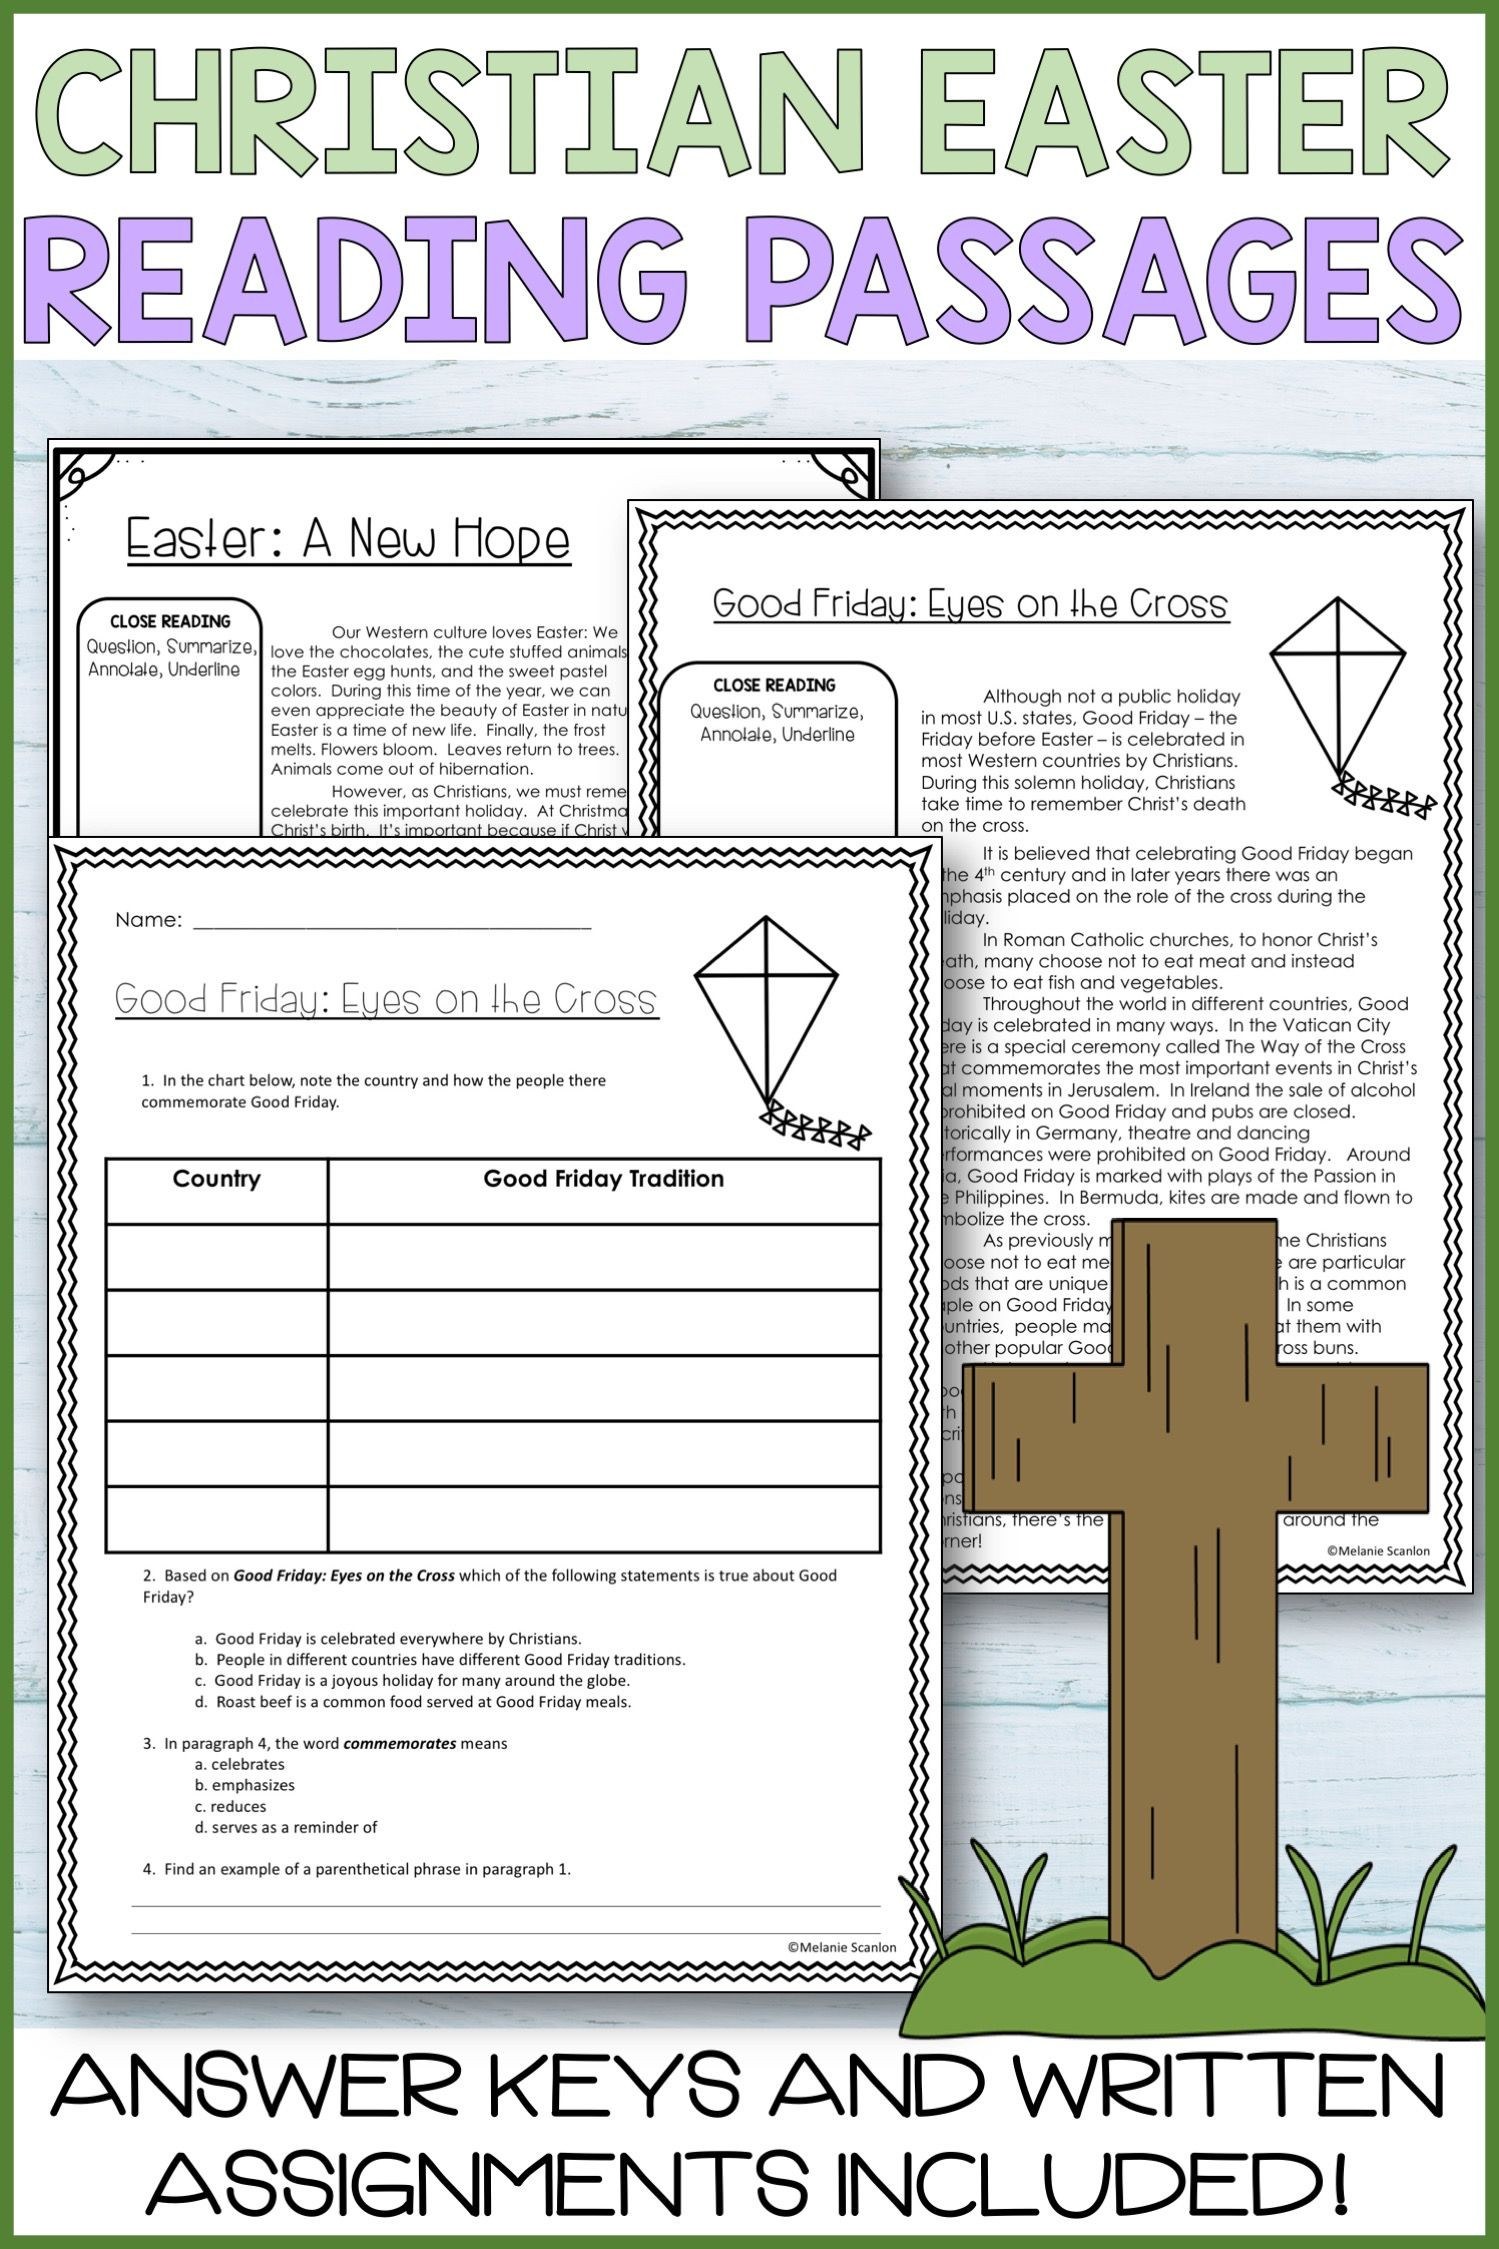 These printable worksheets and close reading activities are